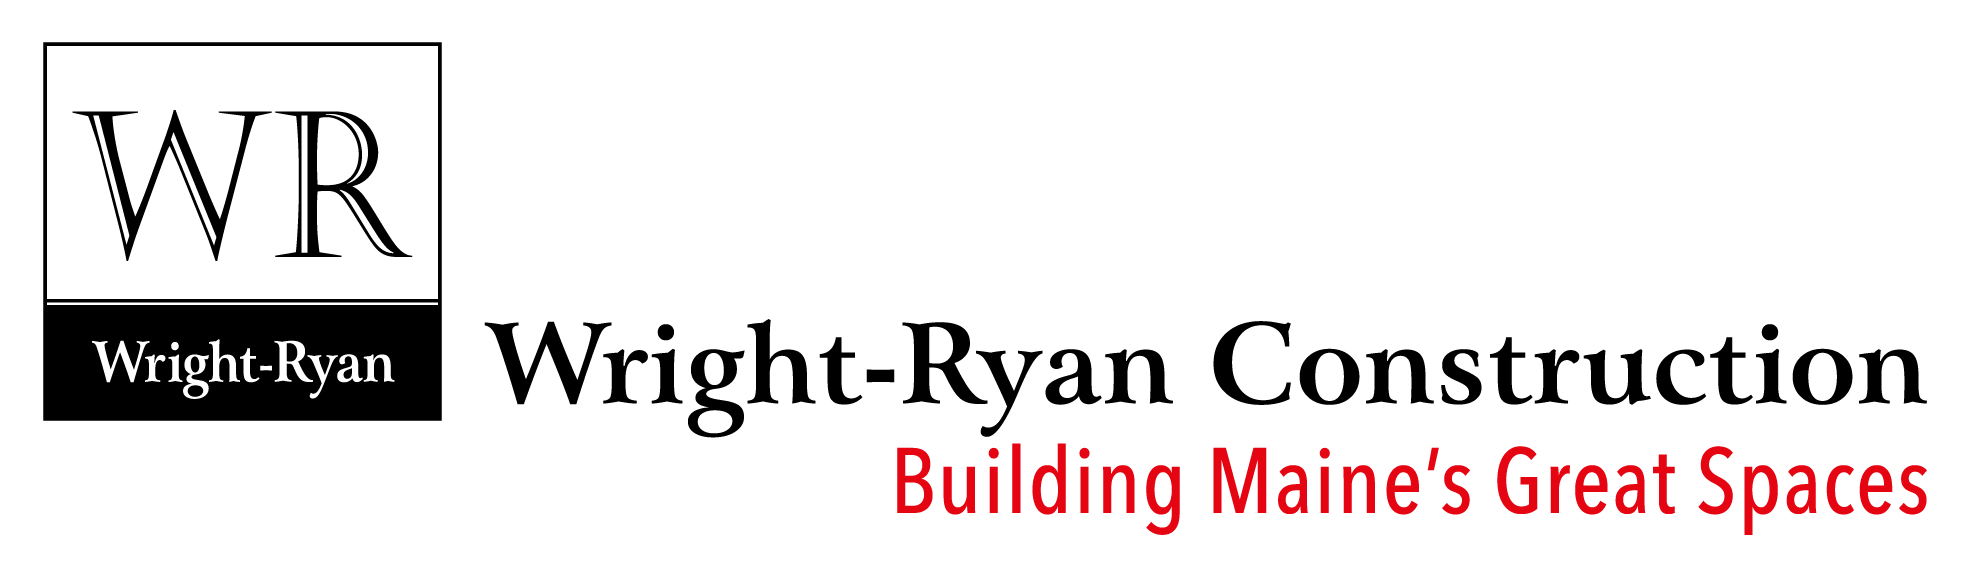 Wright-Ryan Construction